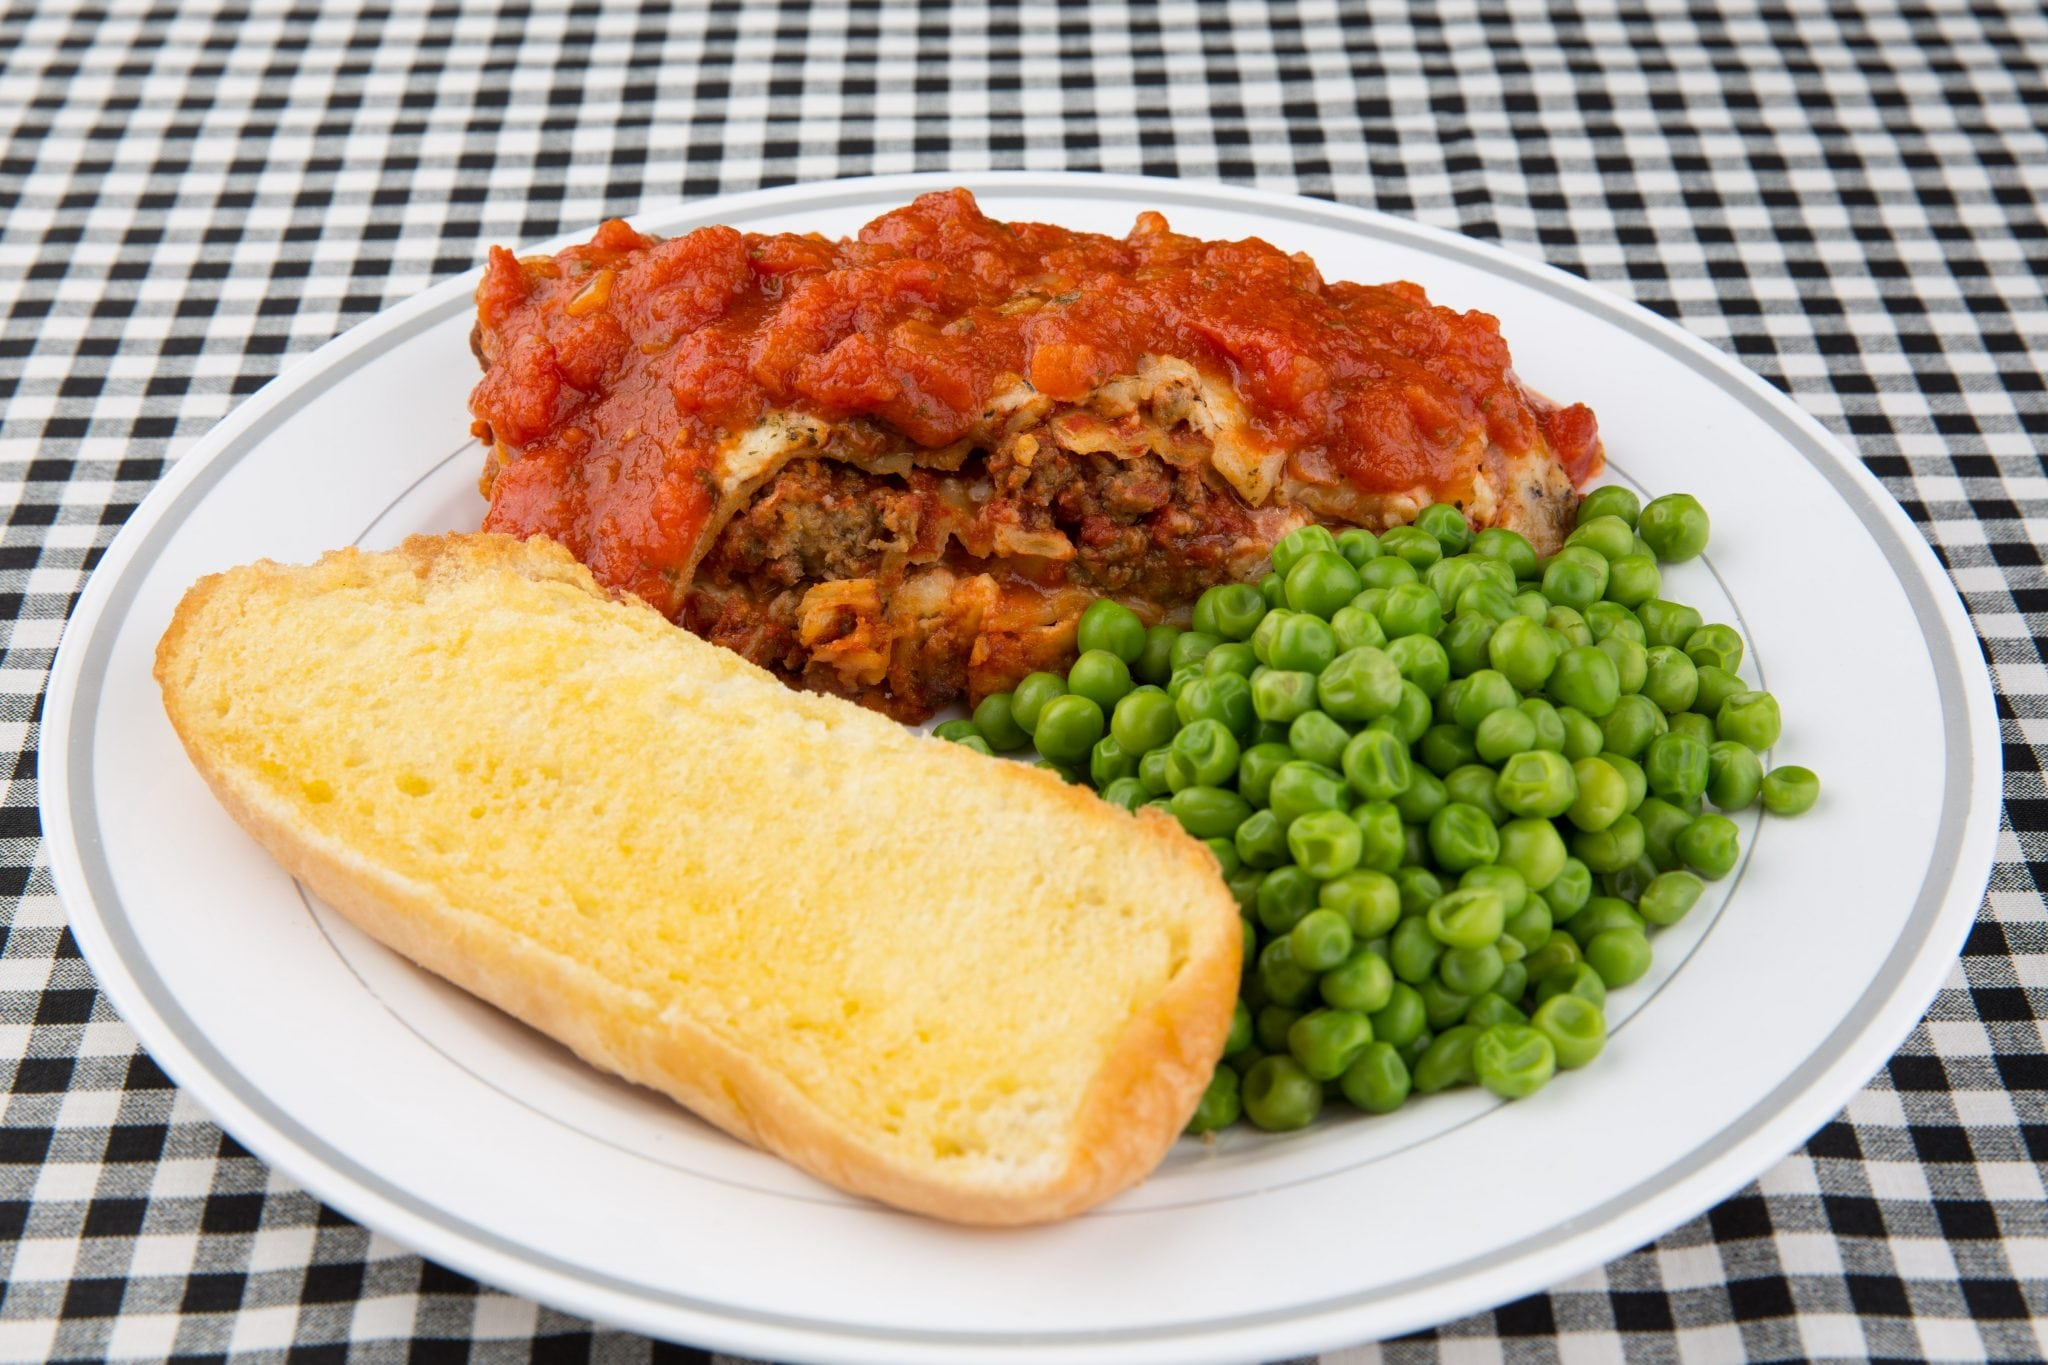 lasagna, green peas, and garlic on white plate and black plaid tablecloth